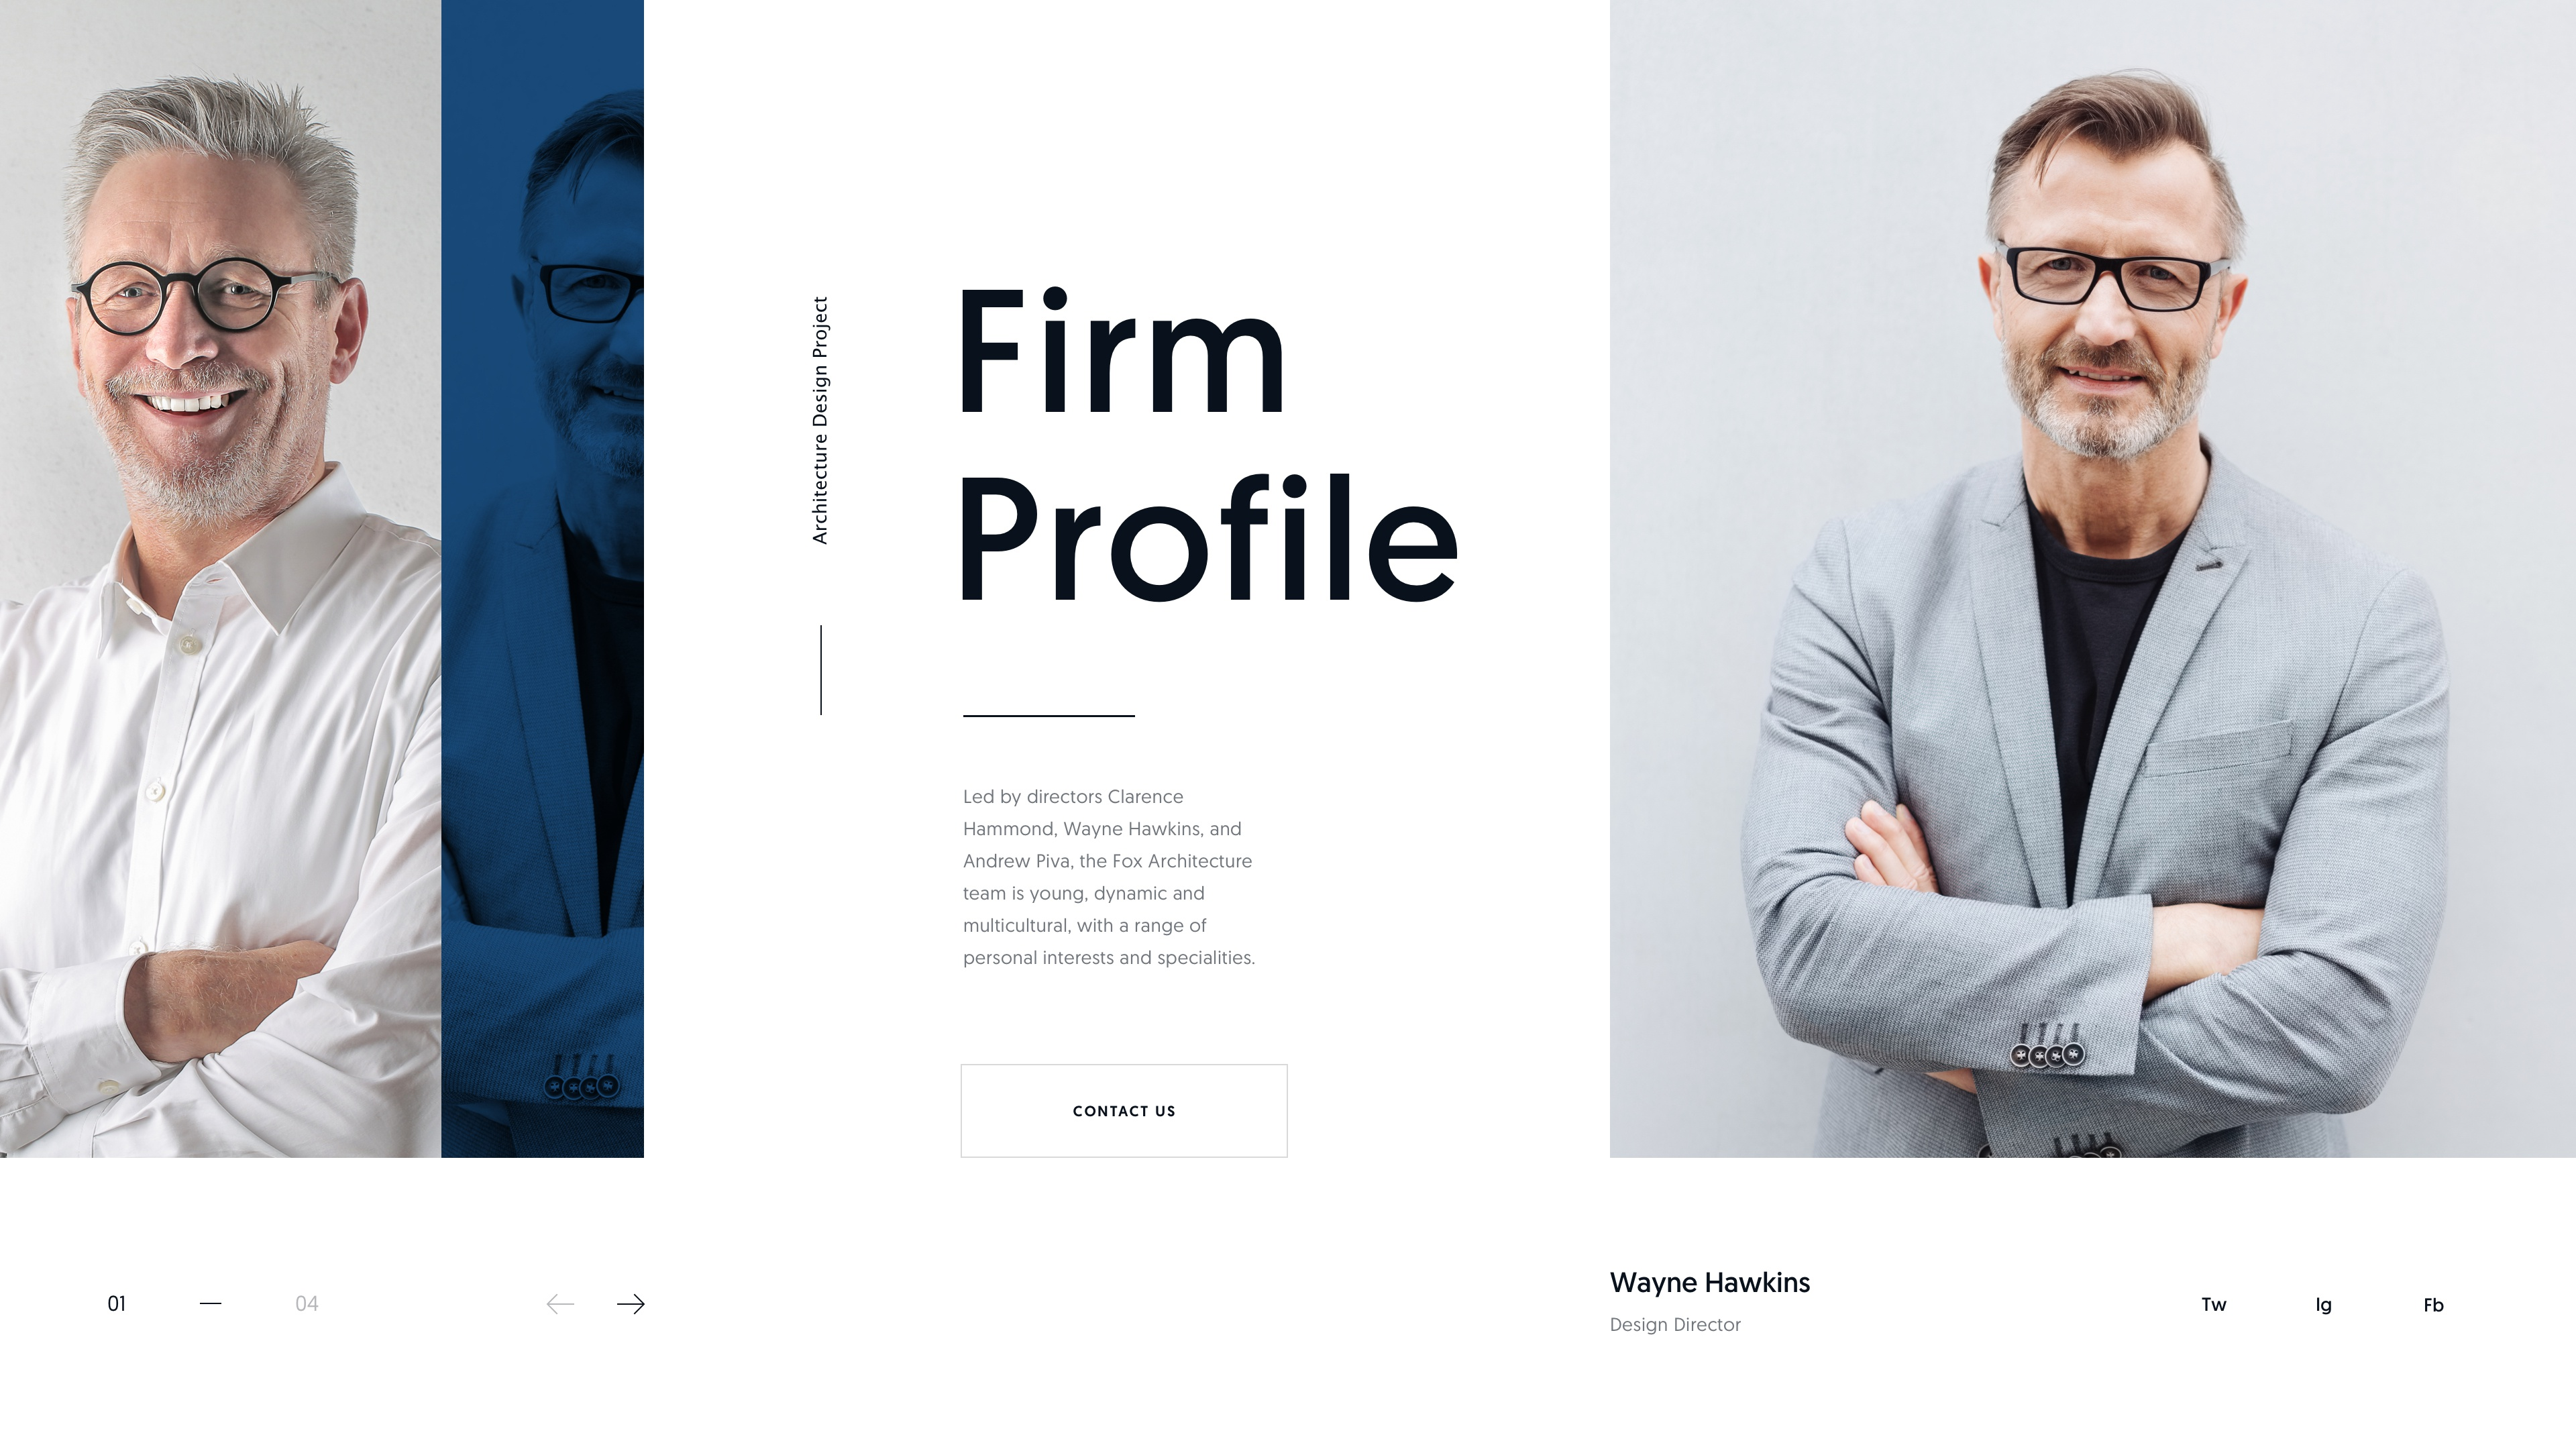 Firm profile 2x